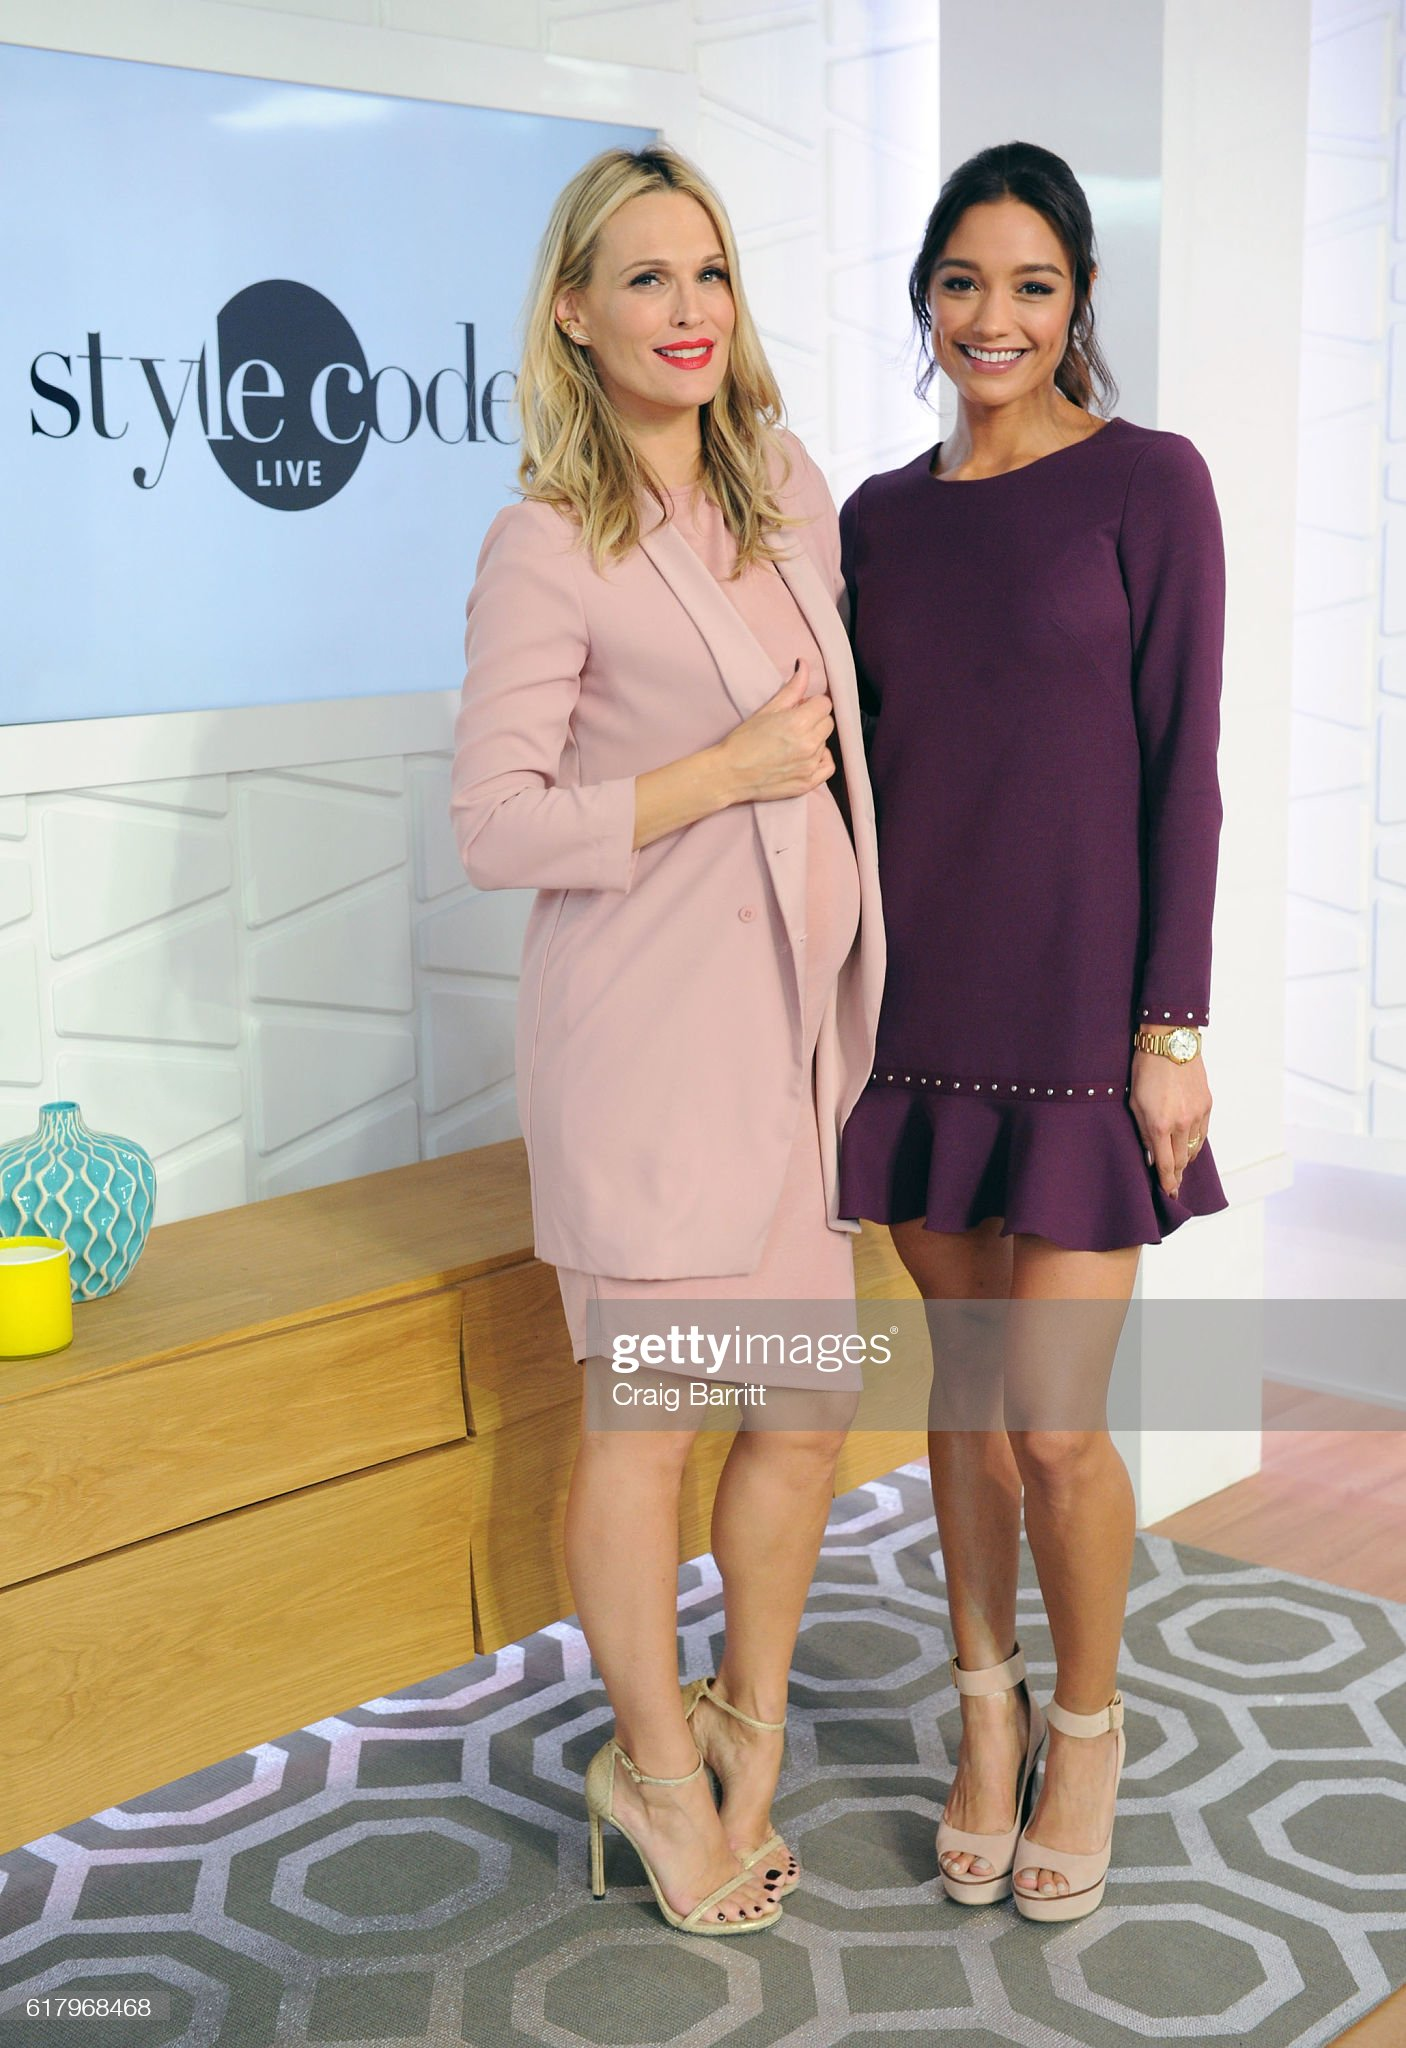 ¿Cuánto mide Rachel Smith? - Real height Molly-sims-and-rachel-smith-appear-on-amazons-style-code-live-on-25-picture-id617968468?s=2048x2048